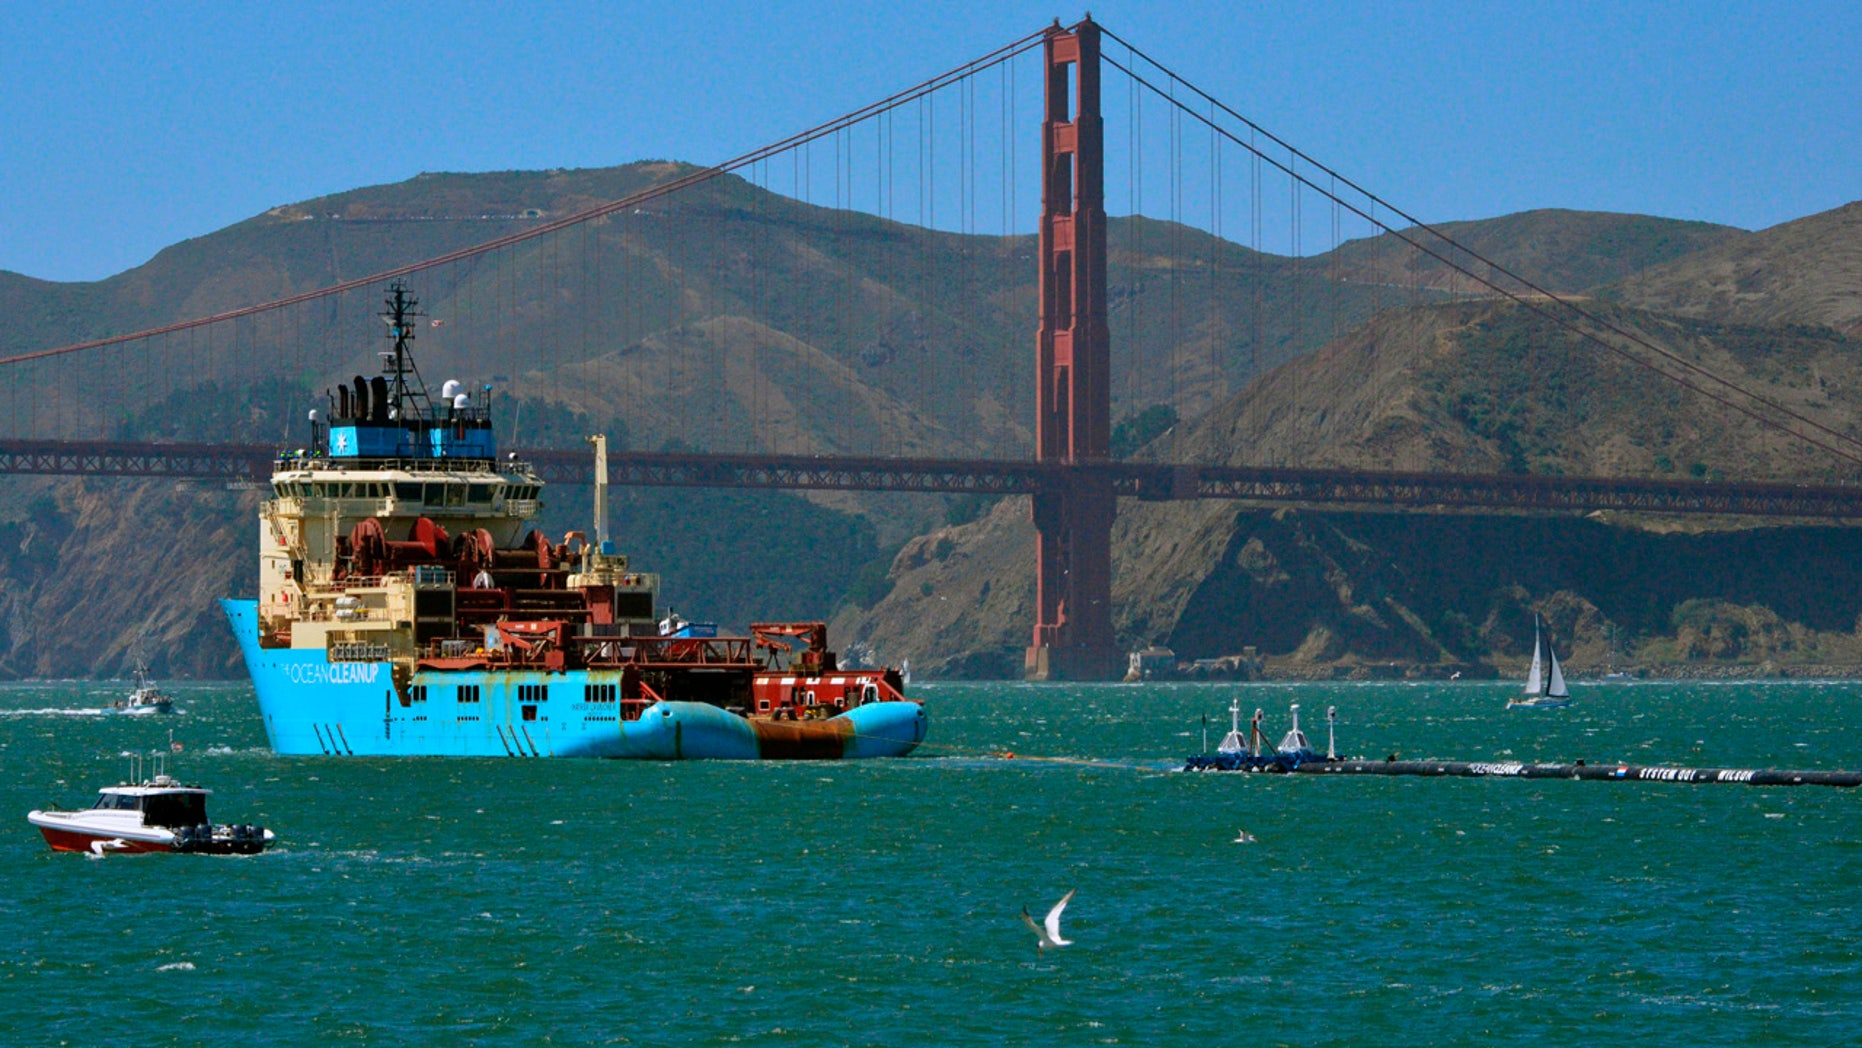 FILE- In this Sept. 8, 2018 file photo, a ship tows The Ocean Cleanup's first buoyant trash-collecting device toward the Golden Gate Bridge in San Francisco en route to the Pacific Ocean. (AP Photo/Lorin Eleni Gill, File)